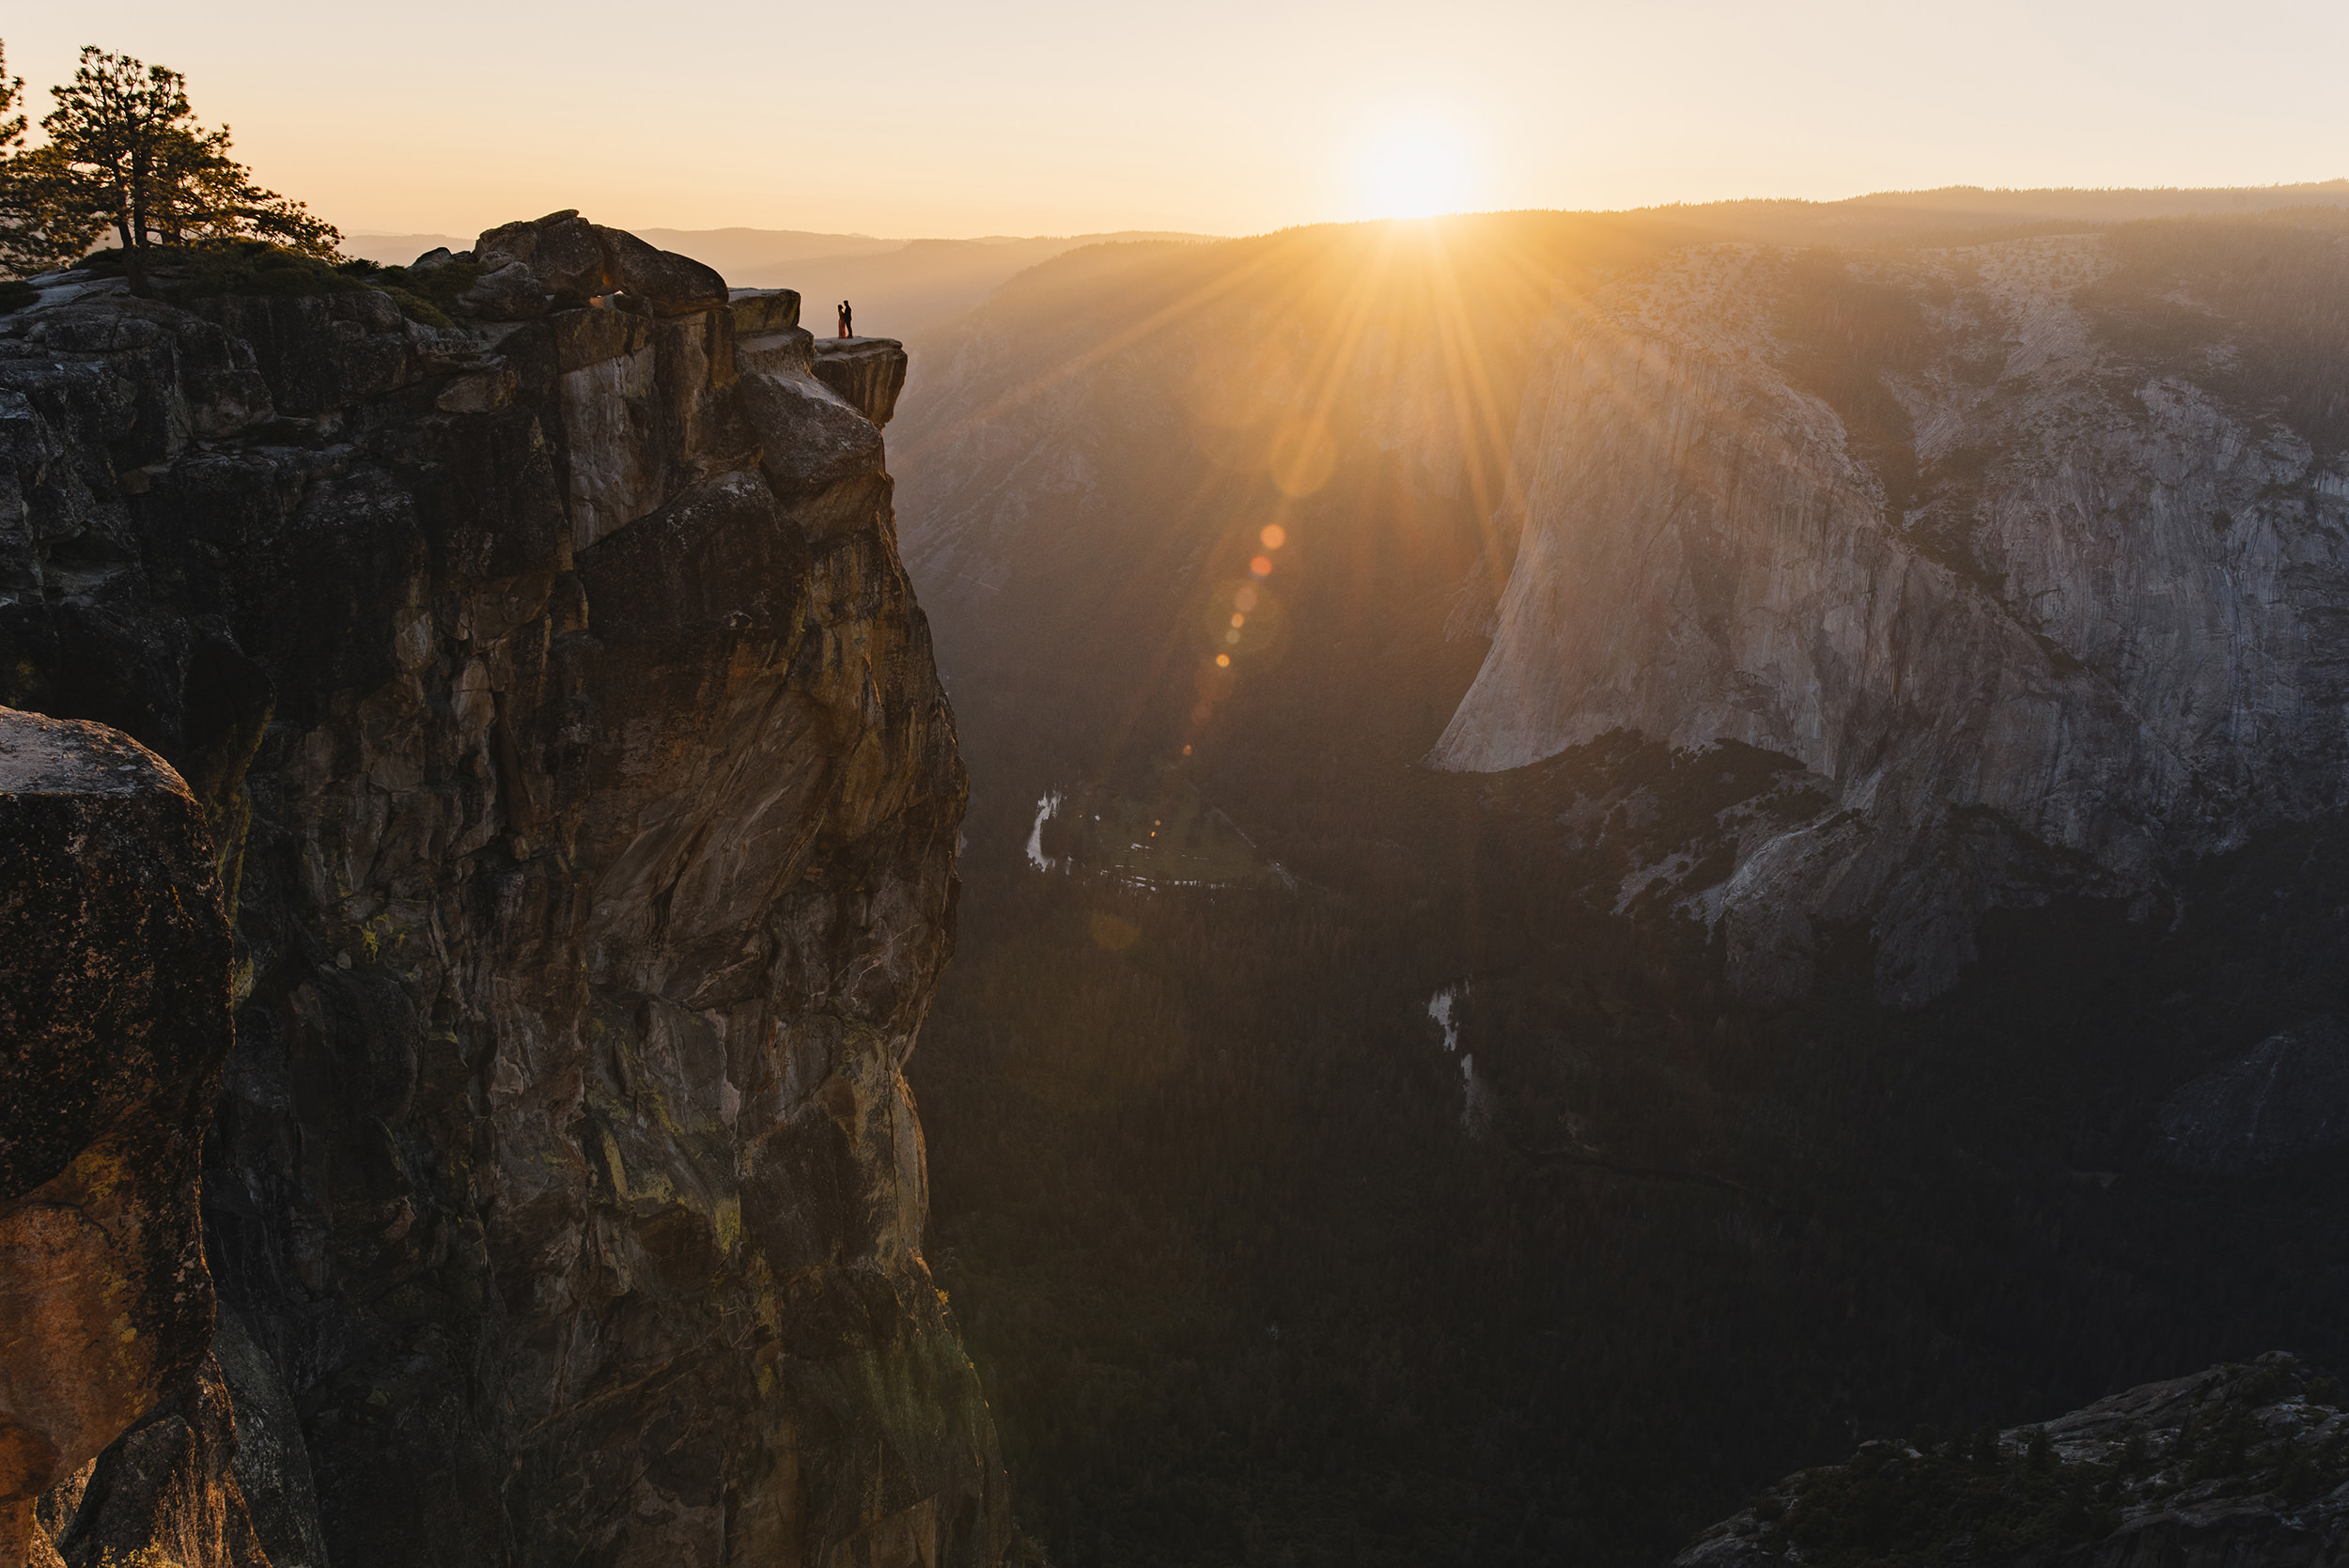 Sunset at Taft Point with couple on cliff edge during adventure engagement photography session by Yosemite Elopement Photographer Colby and Jess colbyandjess.com